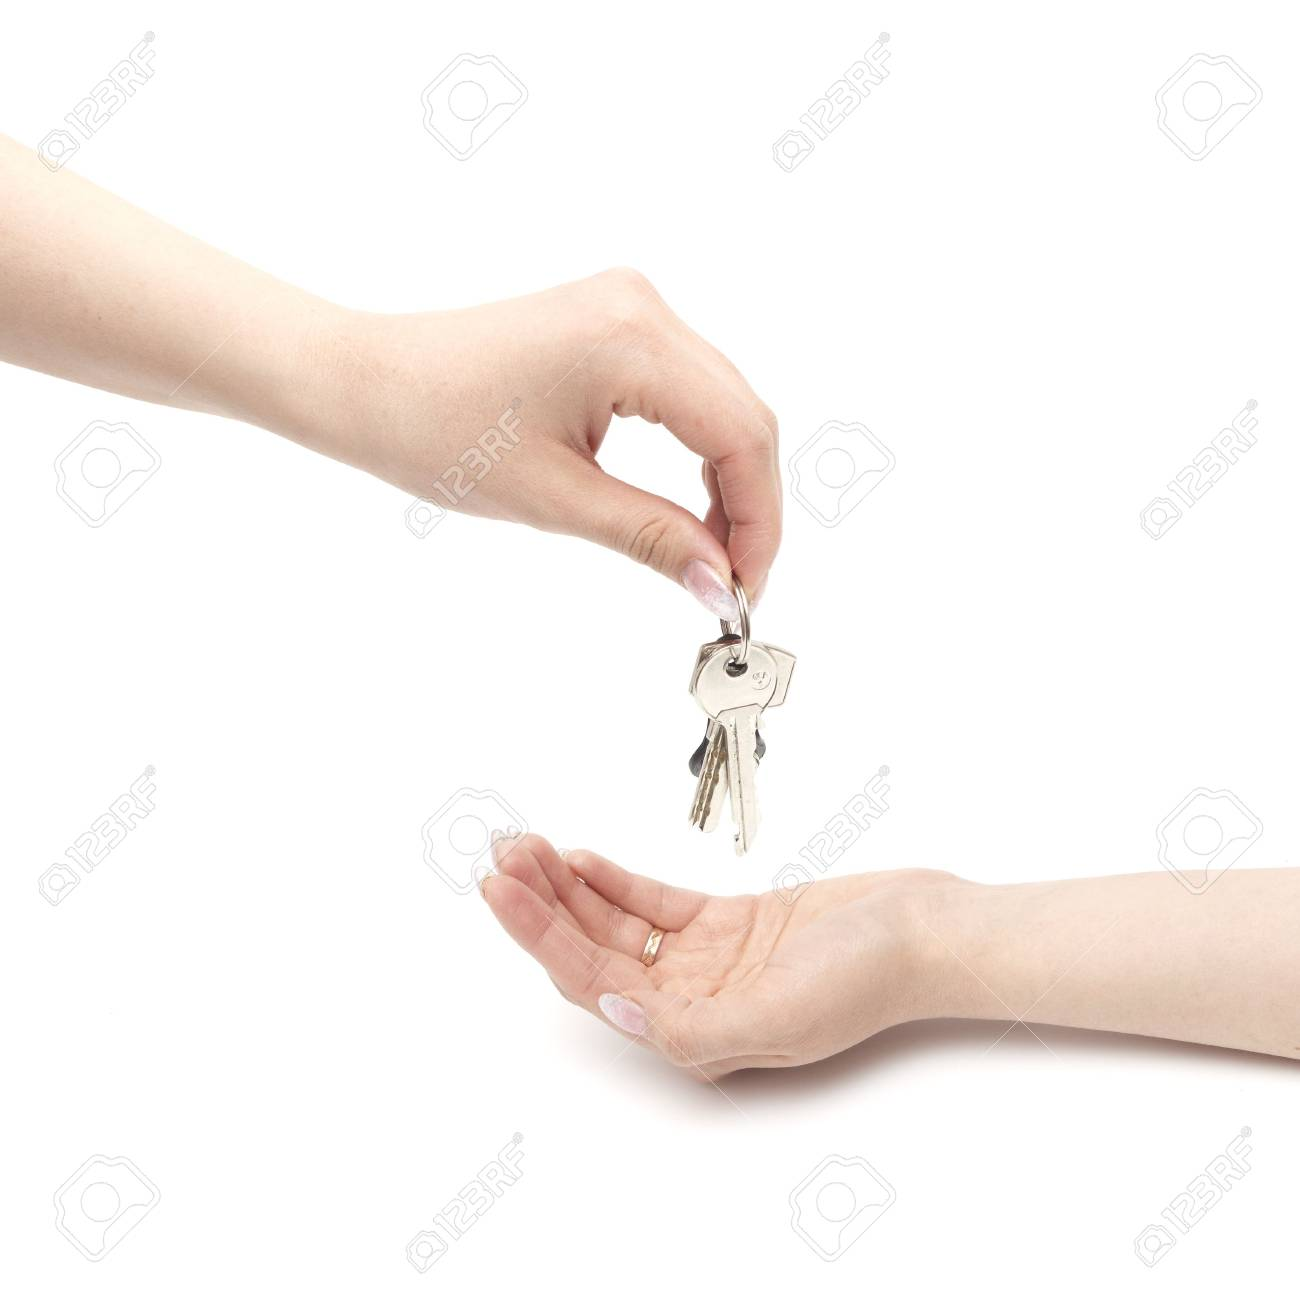 Hands and key isolated on white background Stock Photo - 6785219